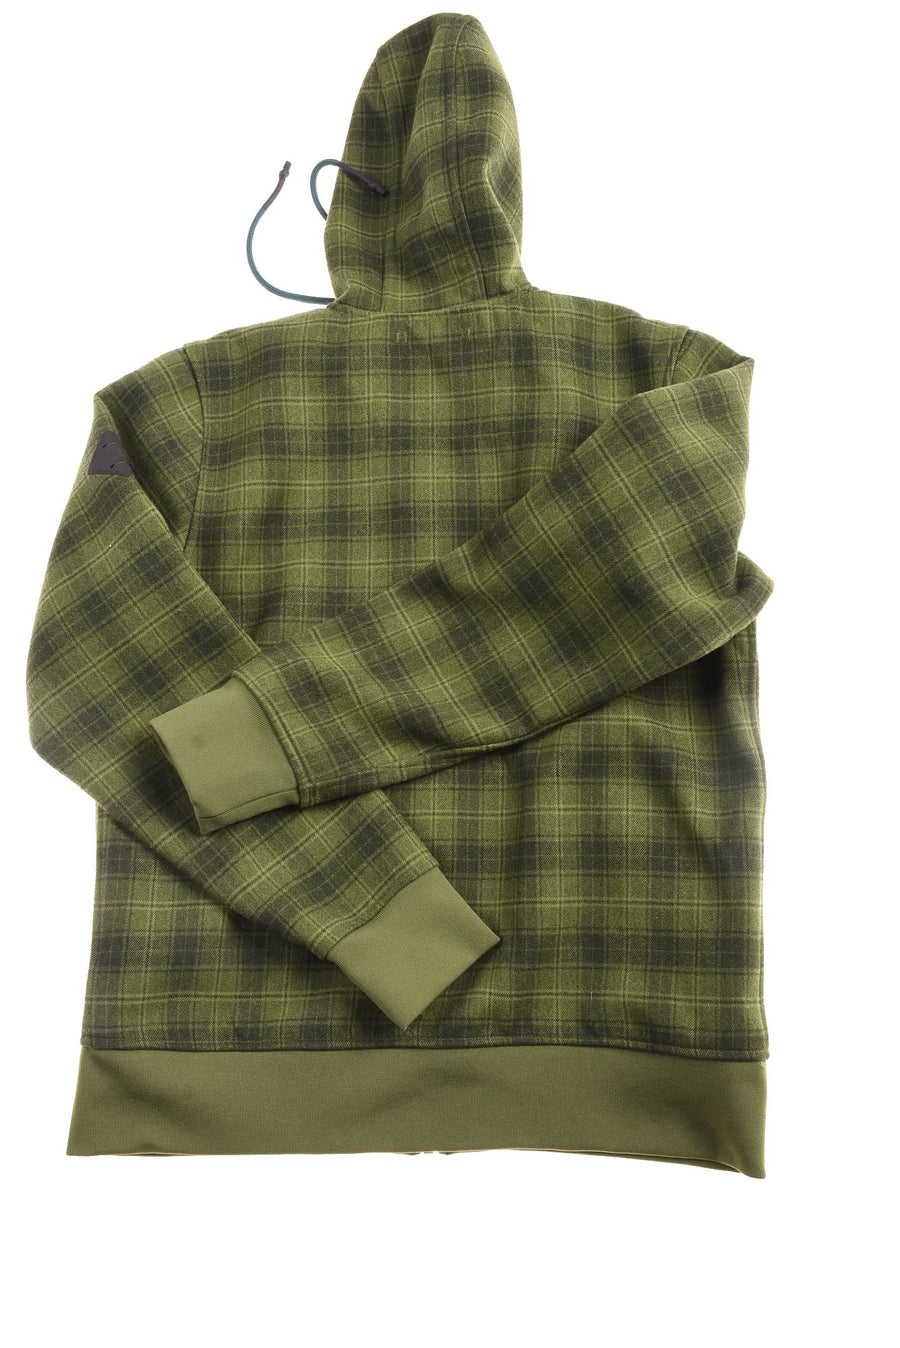 USED The North Face Men's Sweatshirt Medium Green